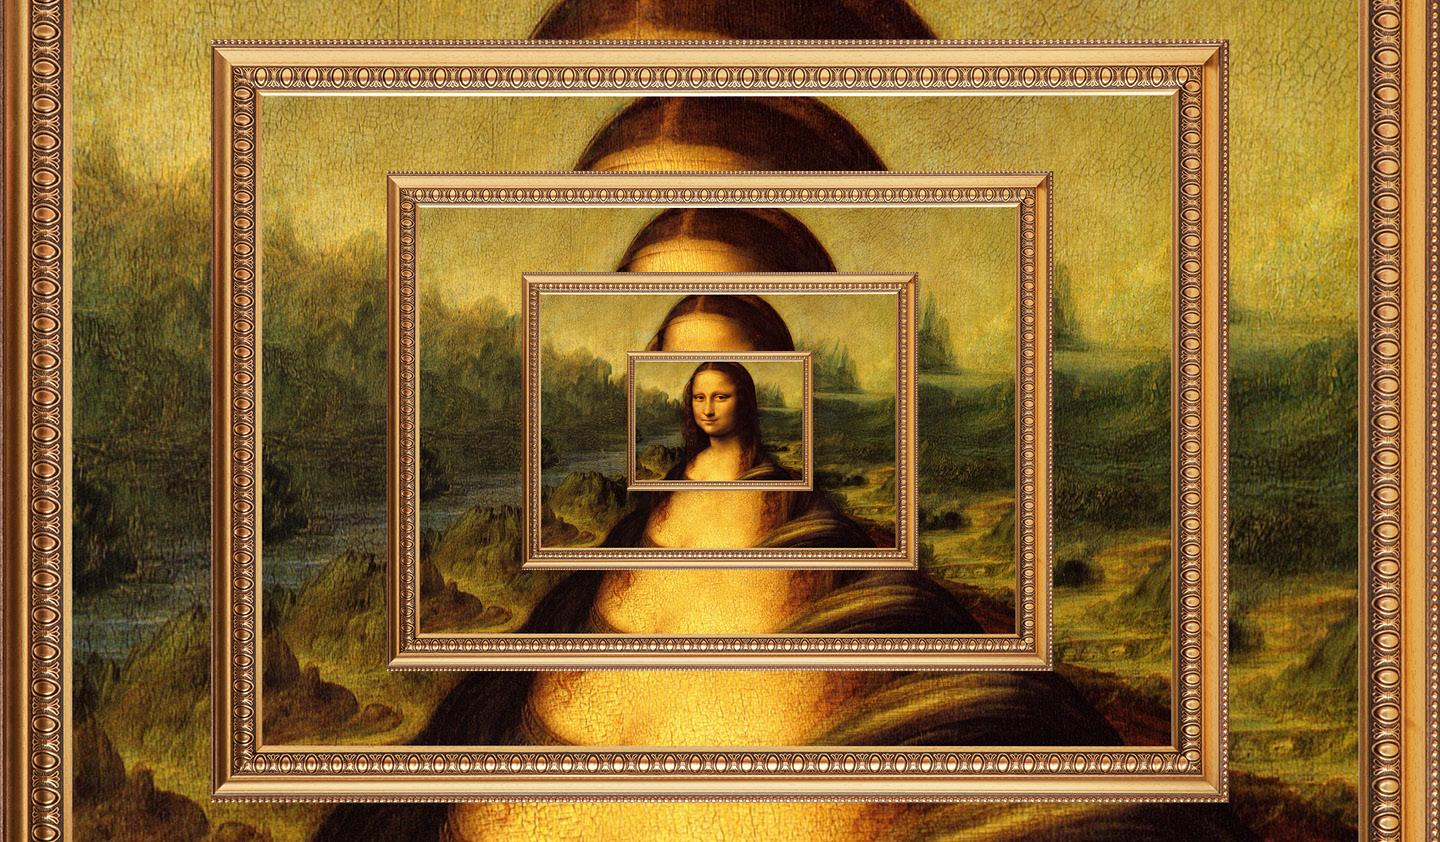 Copies of the Mona Lisa painting on top of one another